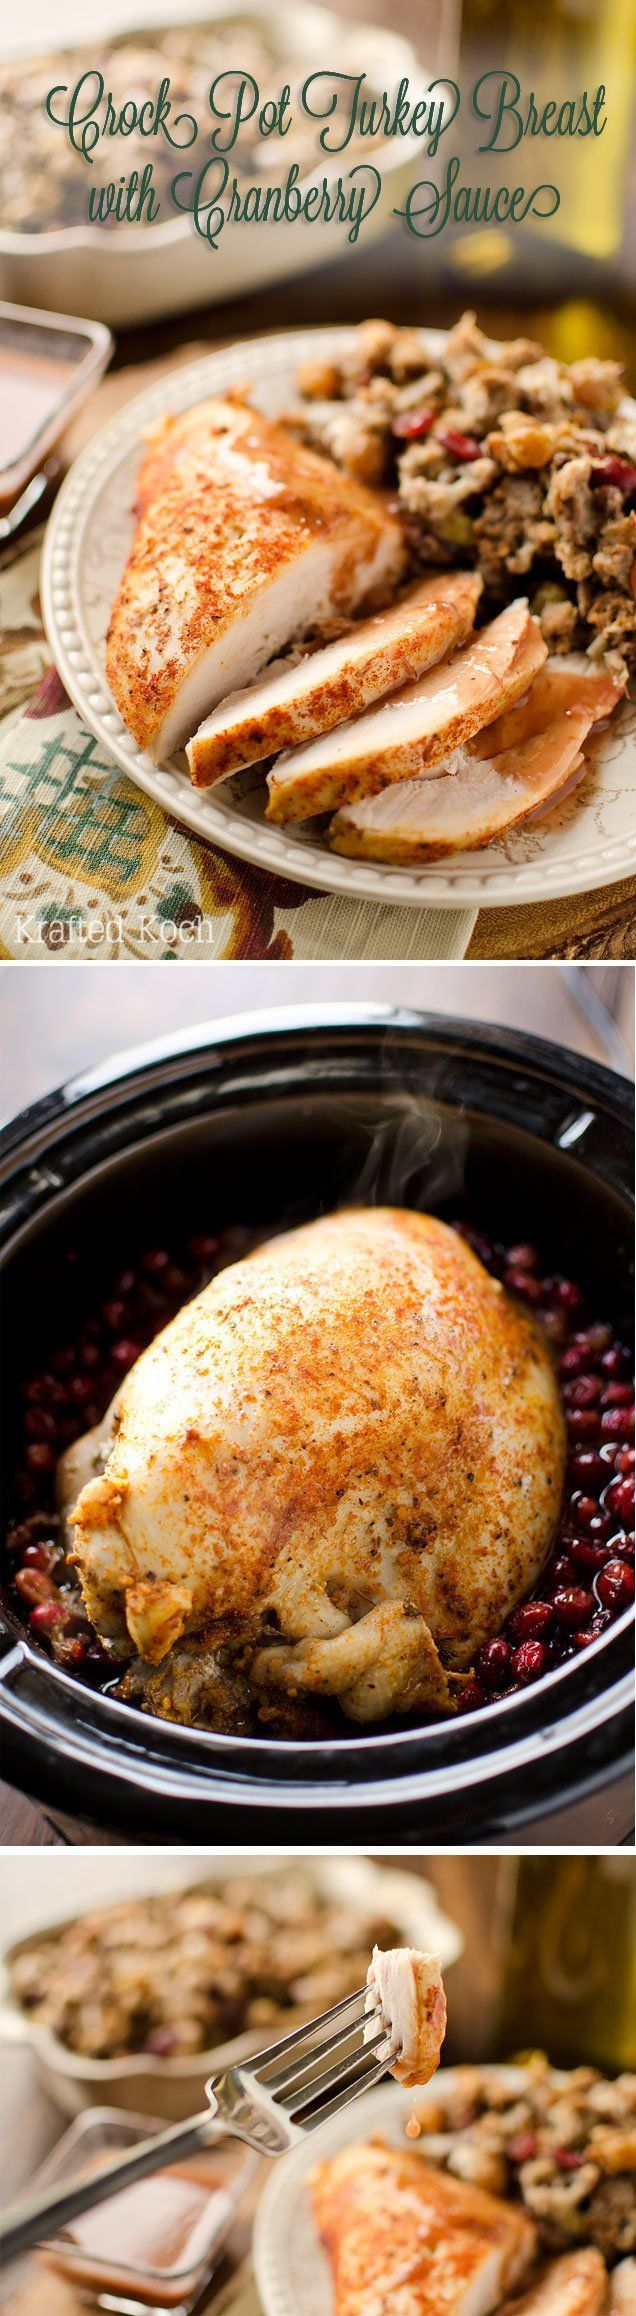 The Best Slow Cooker Recipes for an Office Thanksgiving Potluck Our Best Chicken Slow Cooker Recipes of Food. 5 Slow Cooker Recipes from Crock-Pot-Loving Celebrities. Food. The World's 10 Most-Googled Recipes of Food. The 10 Most Popular Recipes from Kitchn This October. Food. Our 10 Most Popular Fall Slow Cooker Recipes.